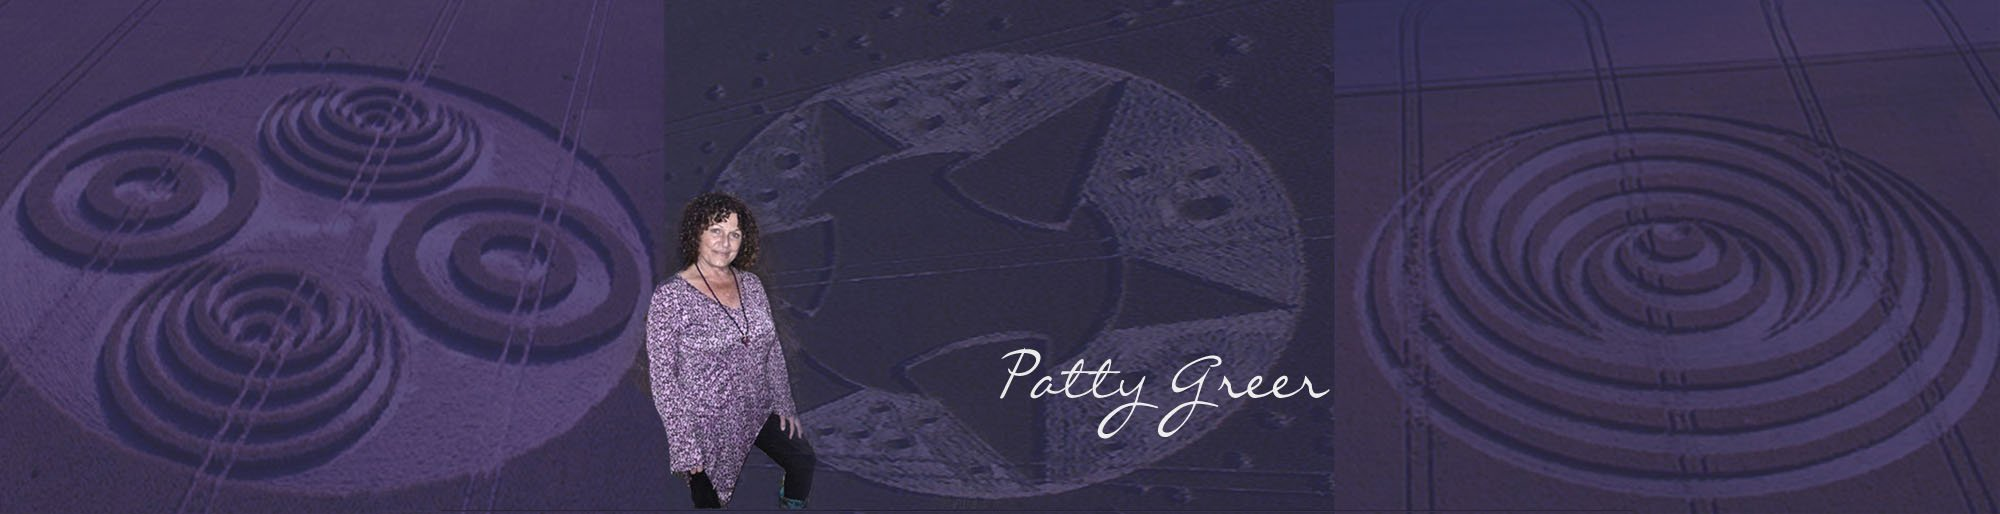 Patty Greer